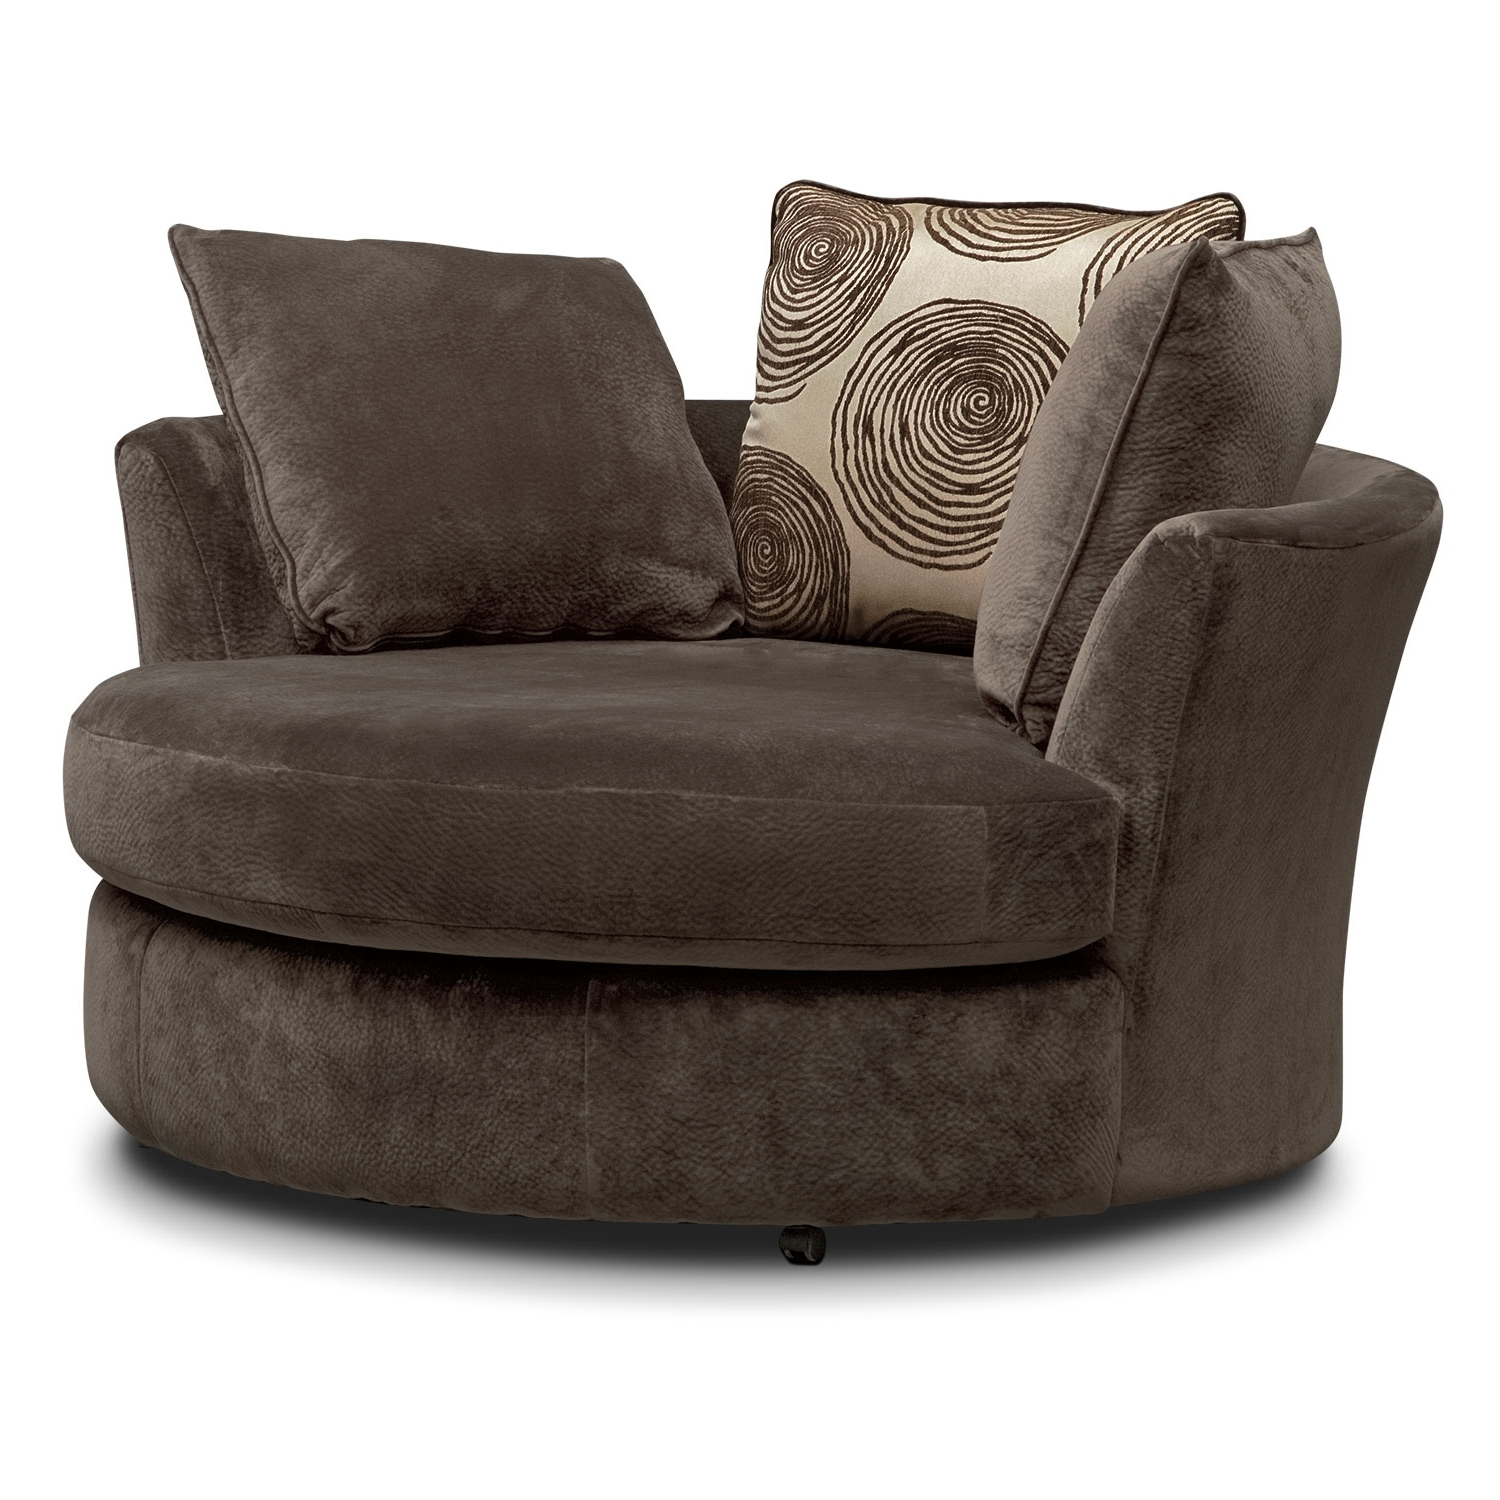 Value City Furniture And intended for Favorite Spinning Sofa Chairs